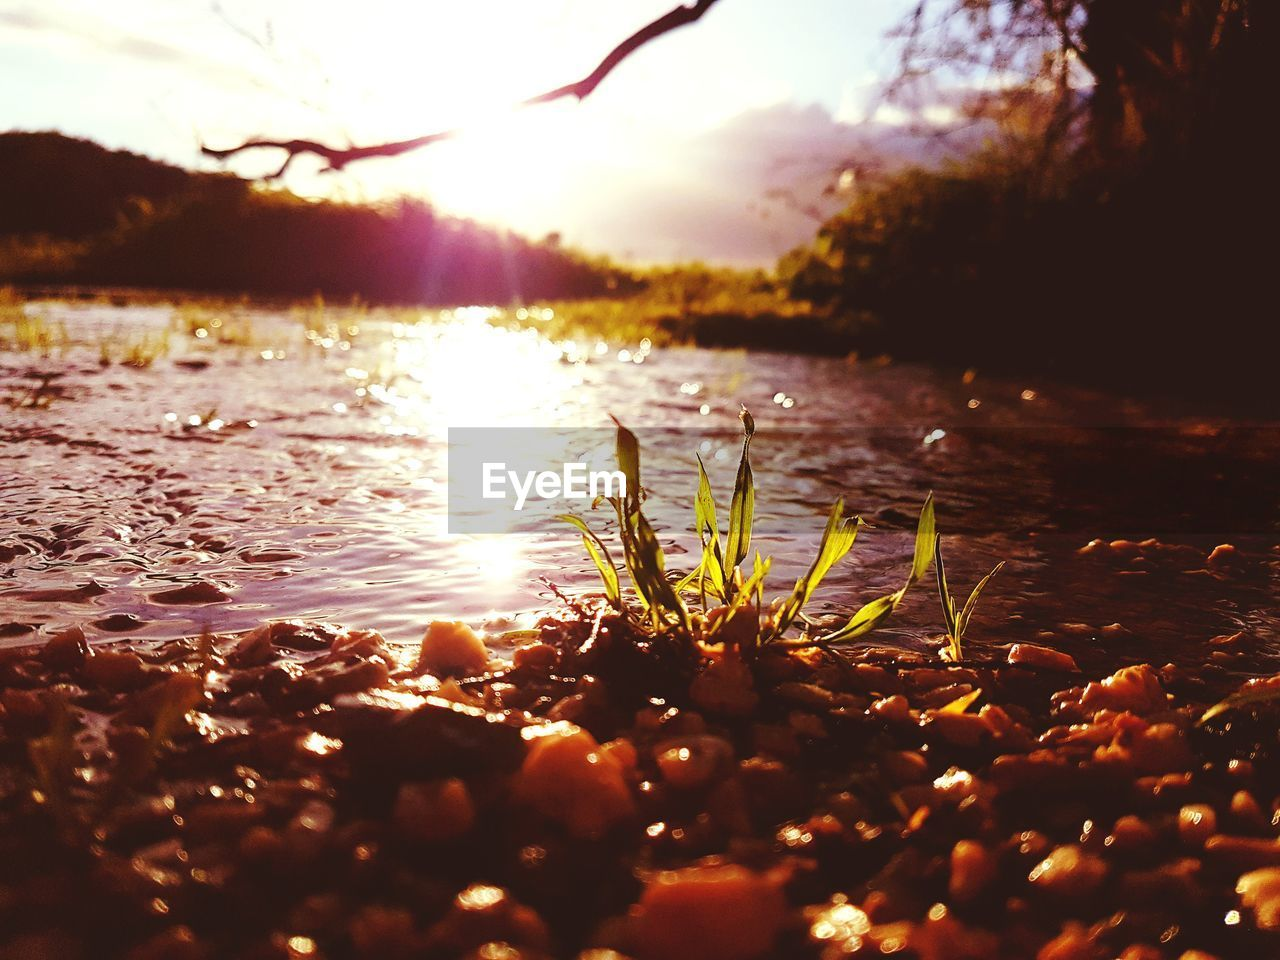 nature, water, sunset, beauty in nature, lake, tranquility, growth, sunlight, tranquil scene, no people, reflection, outdoors, leaf, scenics, plant, tree, silhouette, floating on water, day, sky, close-up